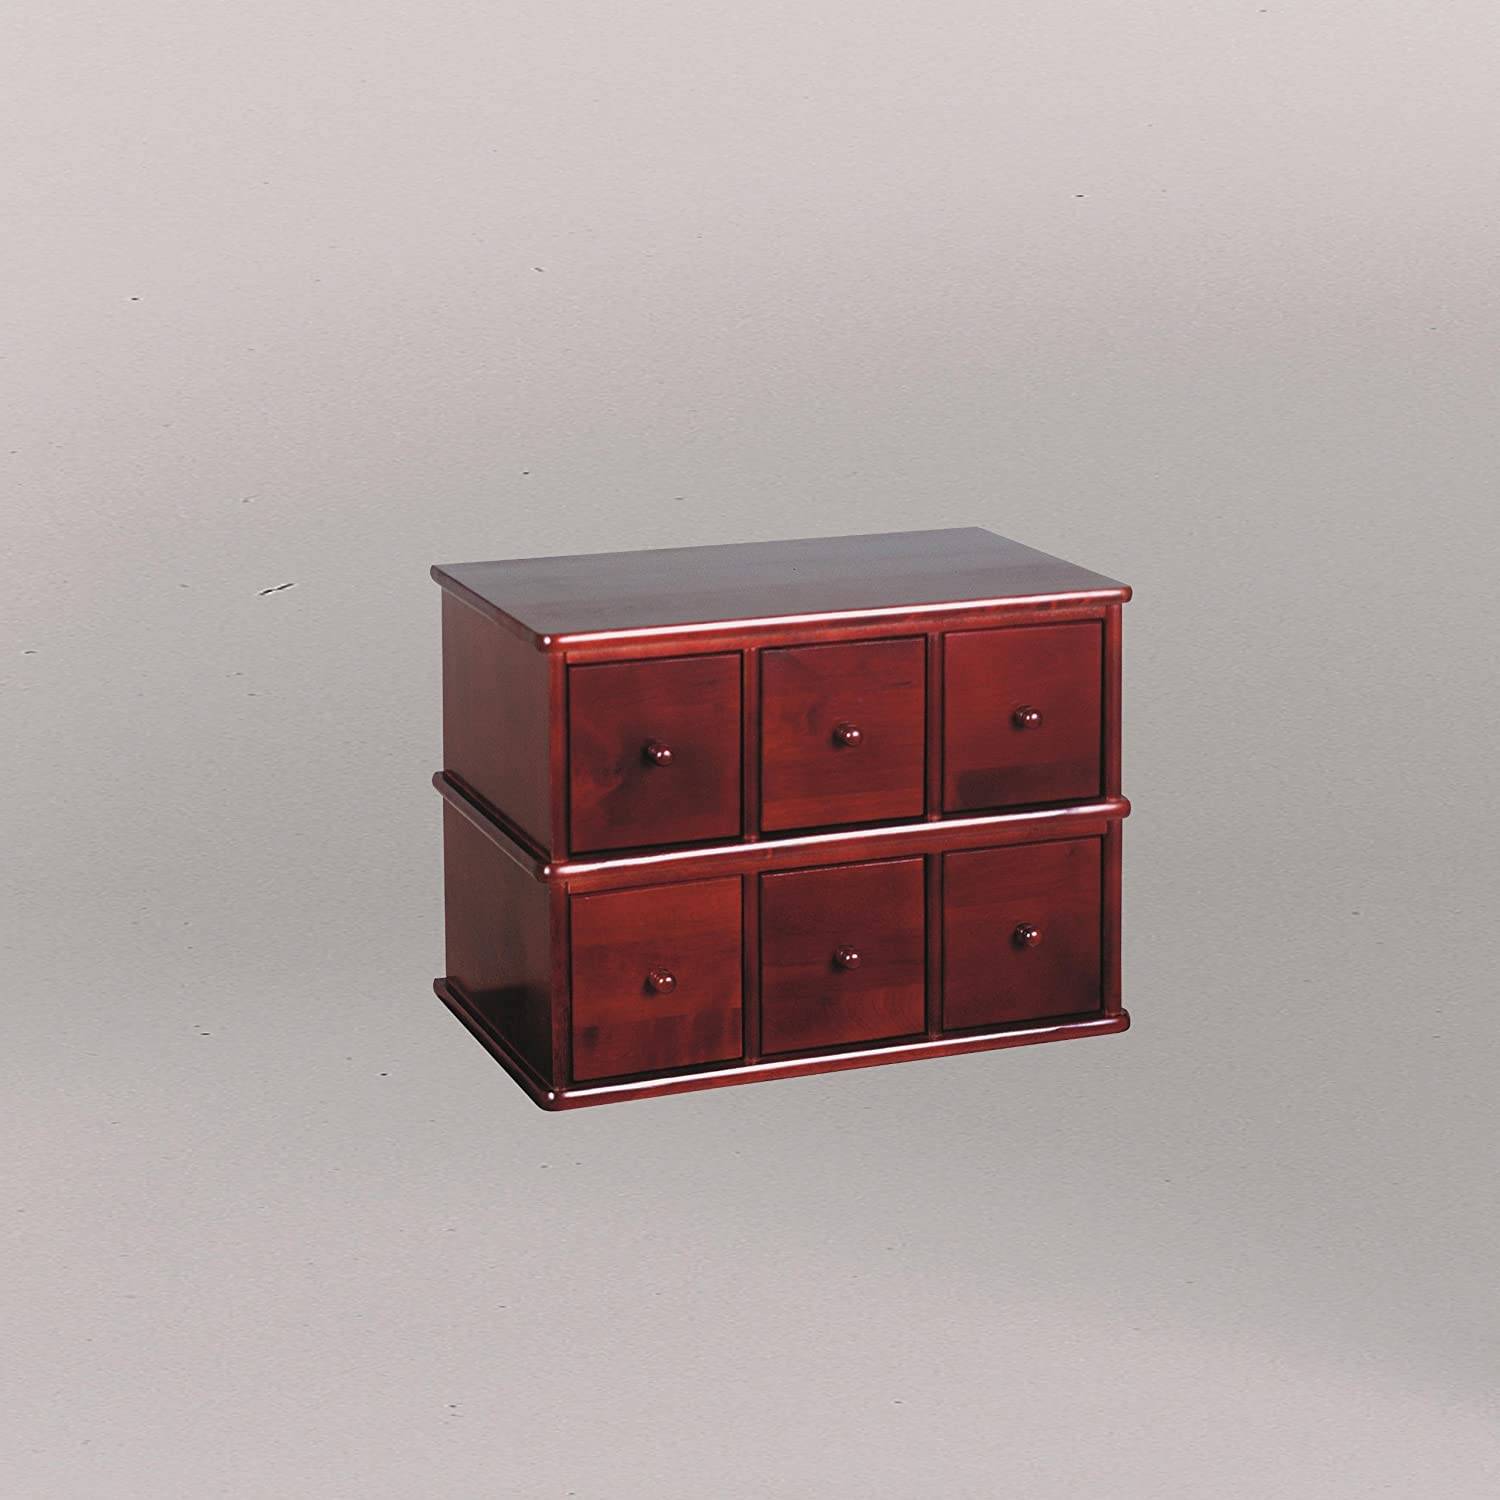 Leslie Dame CD-150C Solid Oak Apothecary Style Multimedia Stoarge Cabinet, Cherry